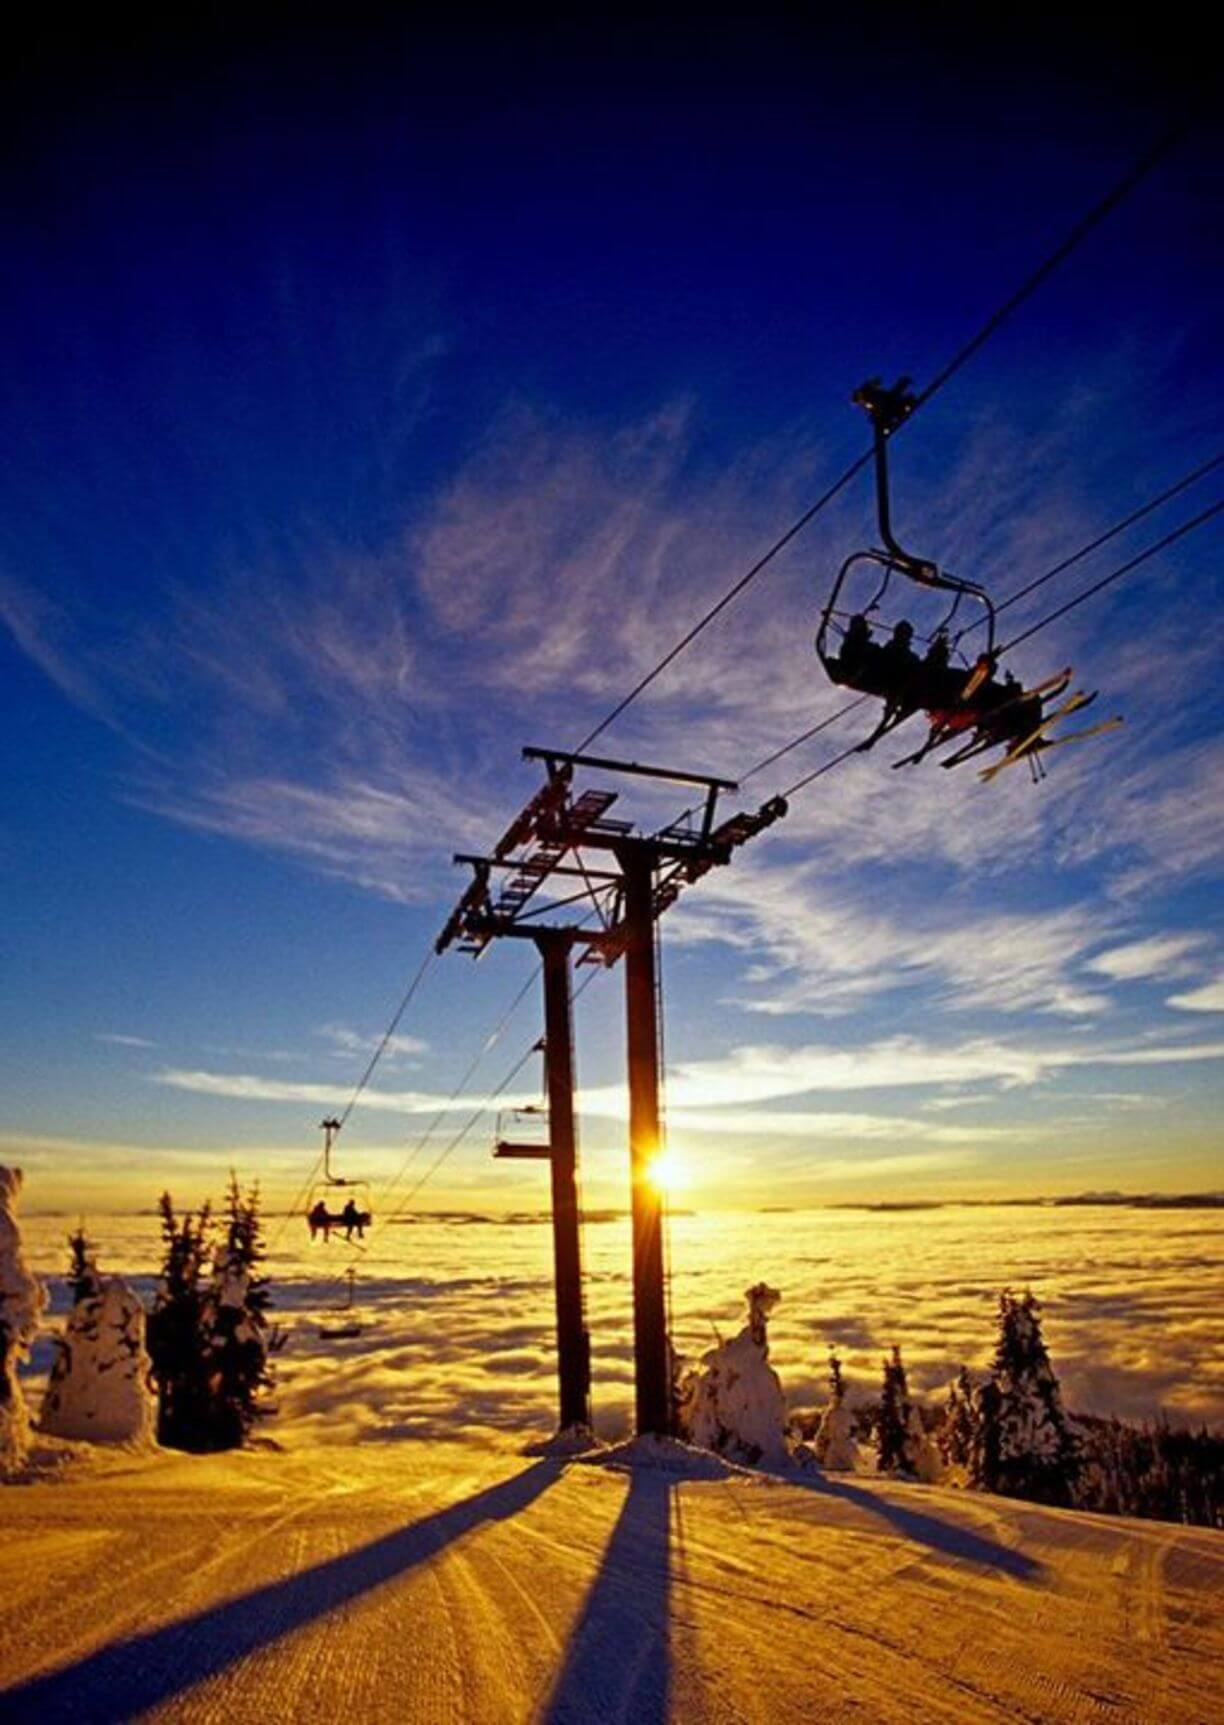 sunrise whitefish ski resort montana